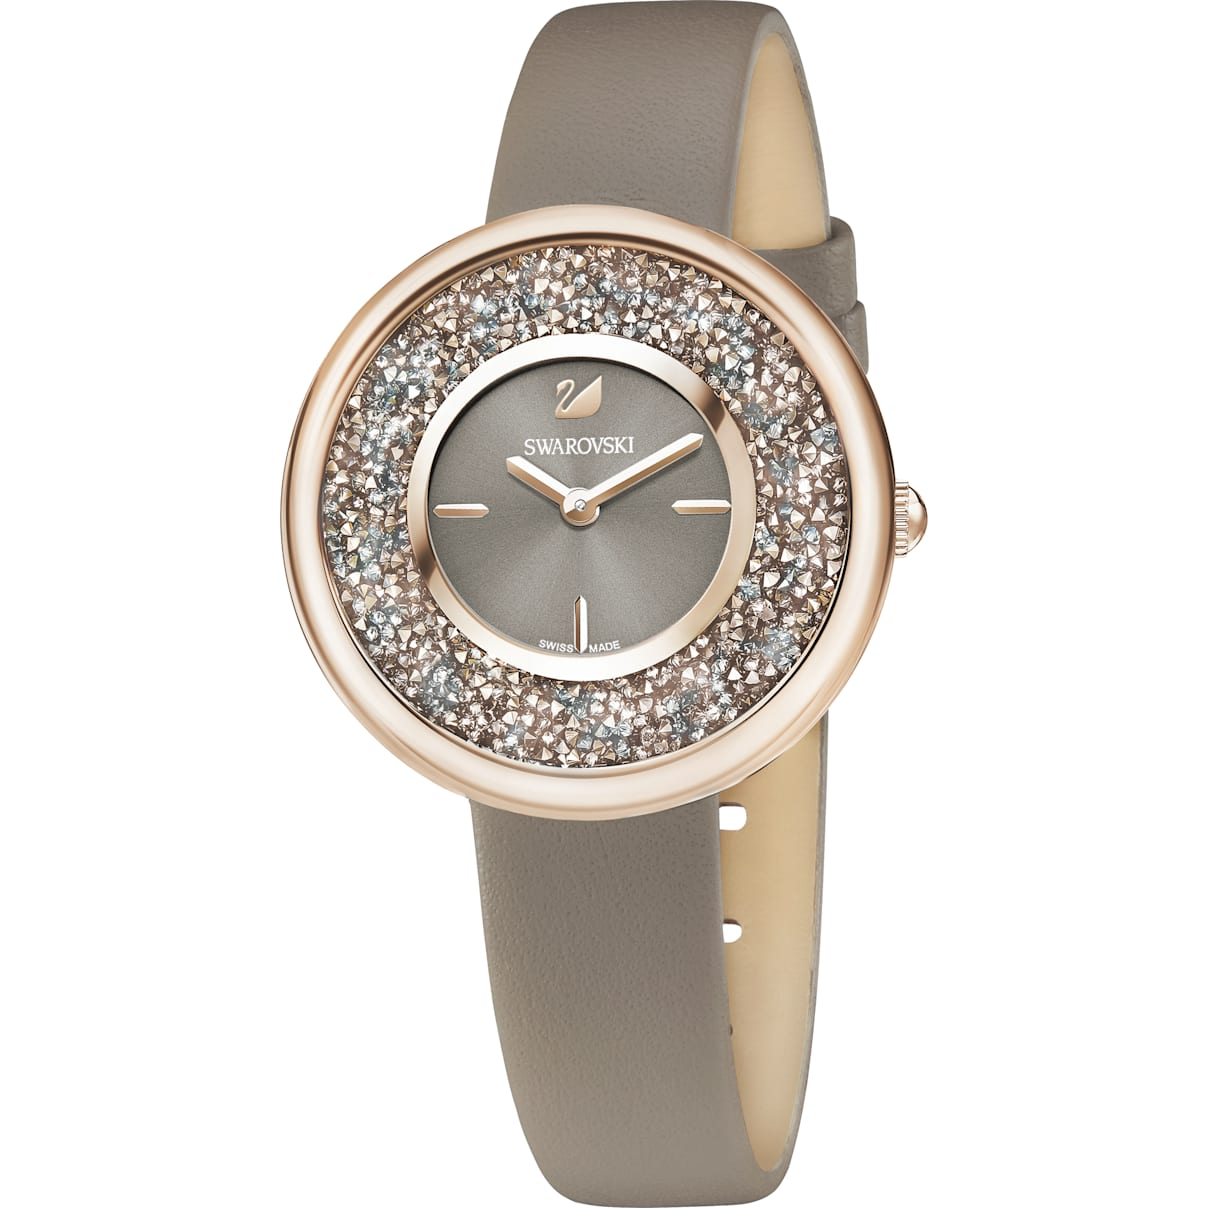 Swarovski Crystalline Pure Watch, Leather strap, Champagne-gold tone PVD